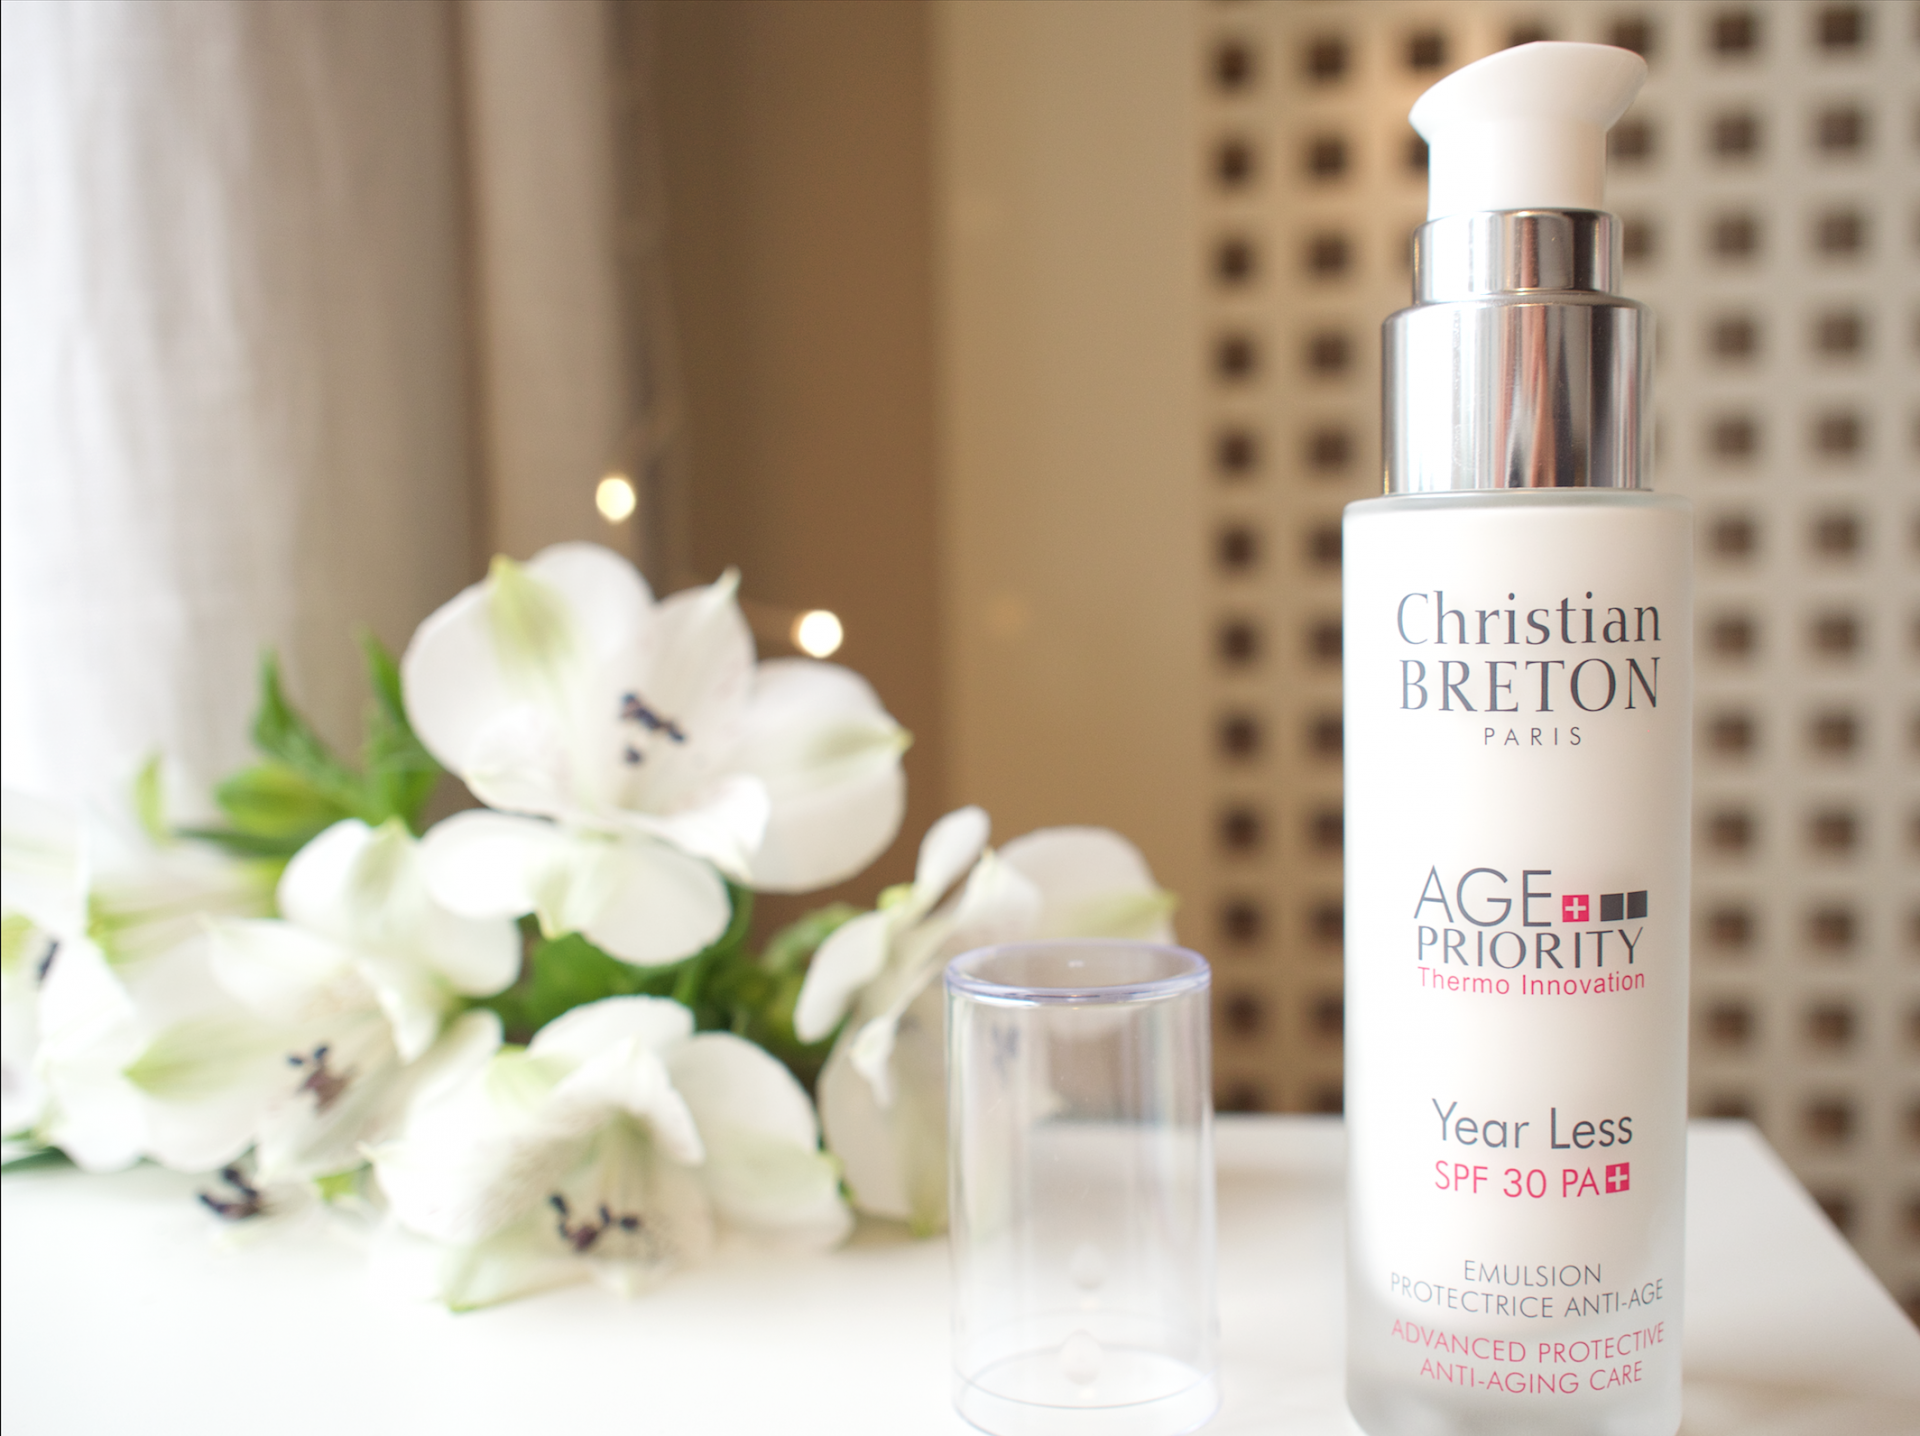 FIGHT POLLUTION WITH THESE BEAUTY PRODUCTS | Megan Taylor